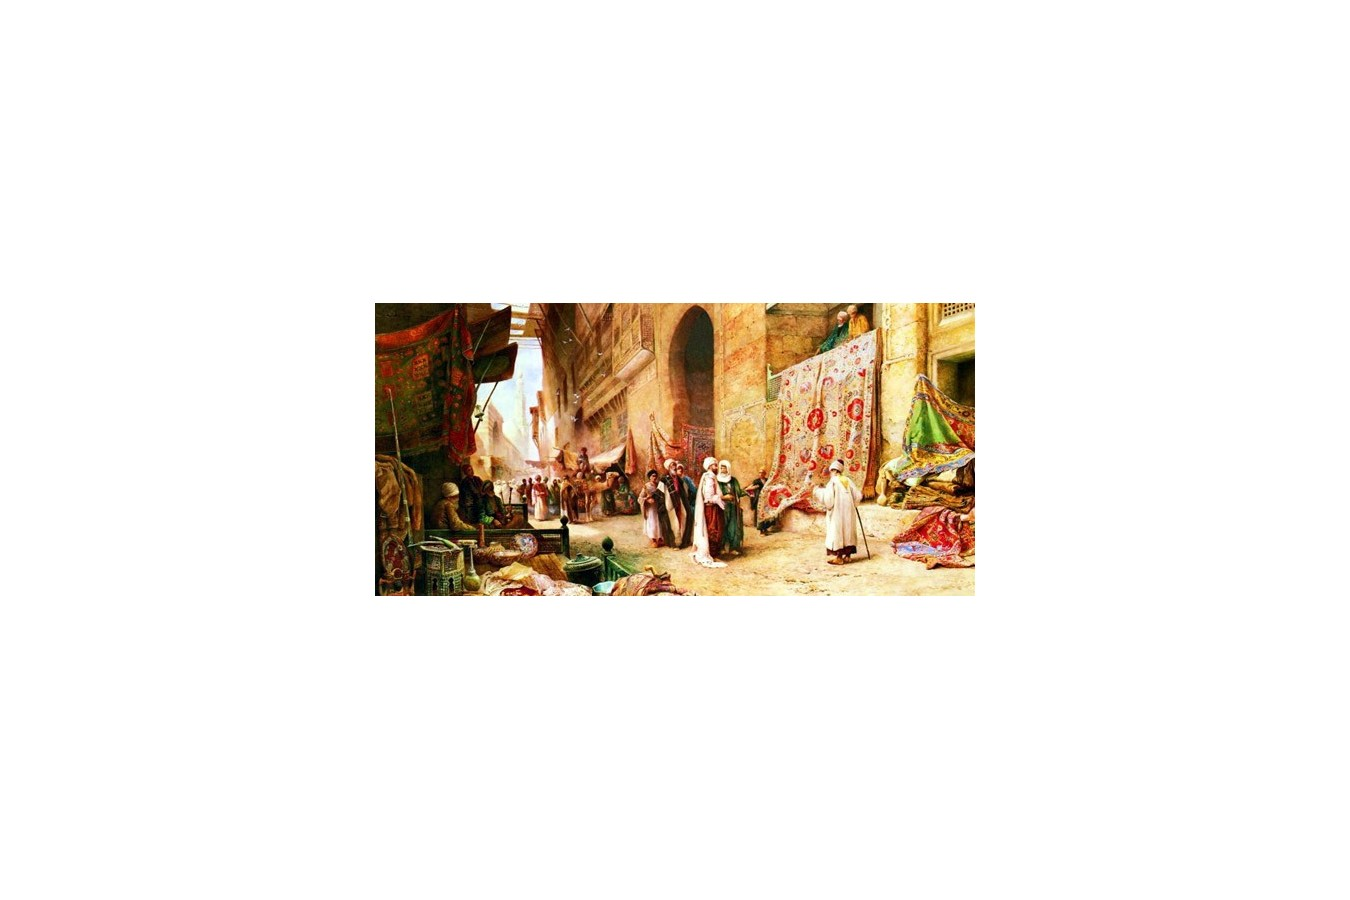 Puzzle Anatolian - A Carpet Sale In Cairo, 1500 piese, panoramic (3751) imagine